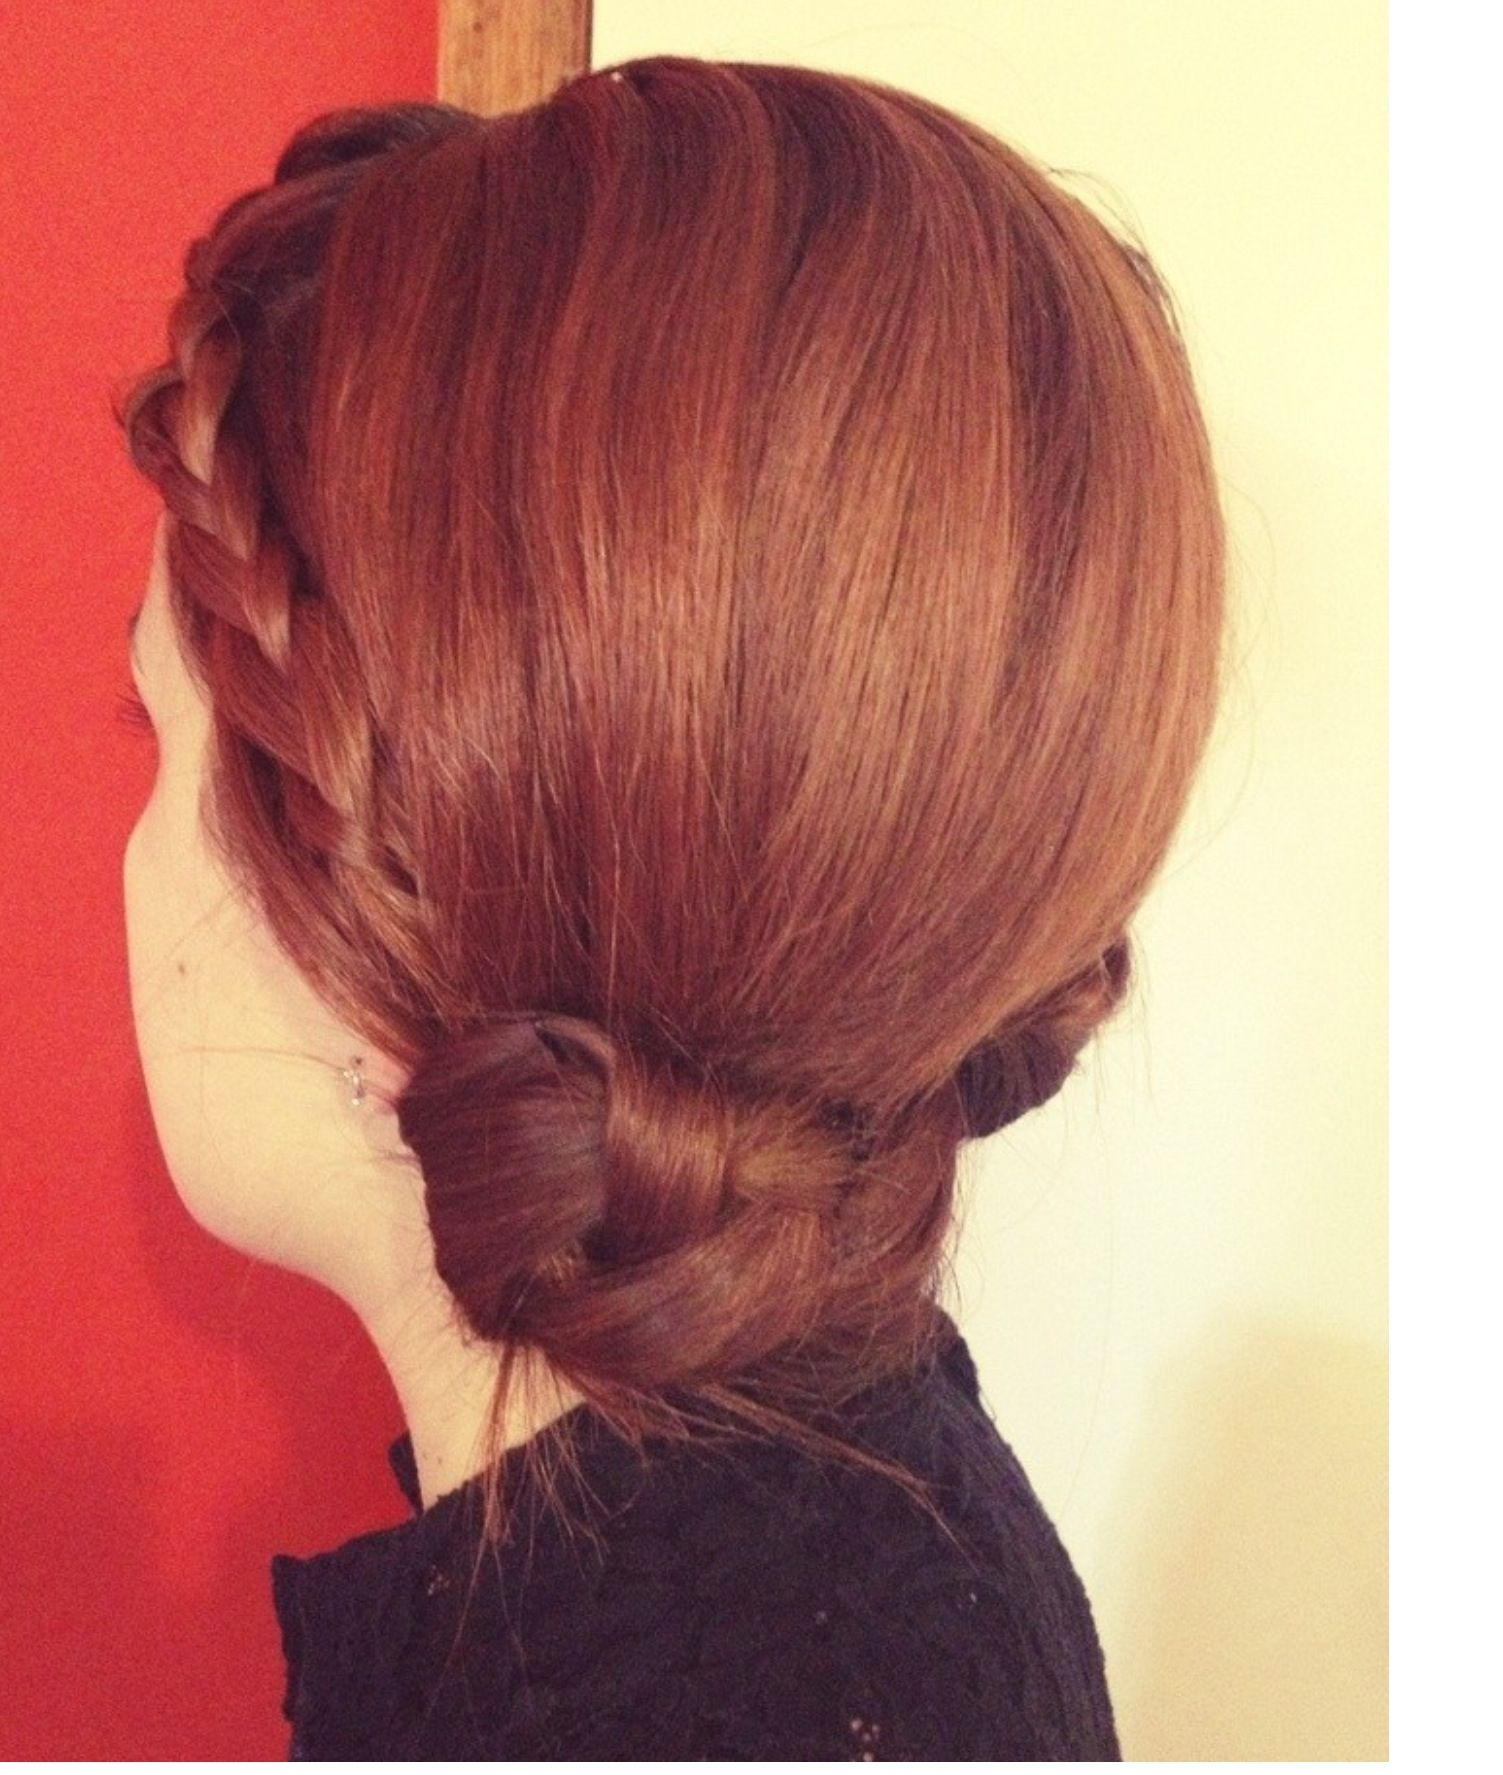 Pin by theatergeek on hair u beauty pinterest hair and beauty